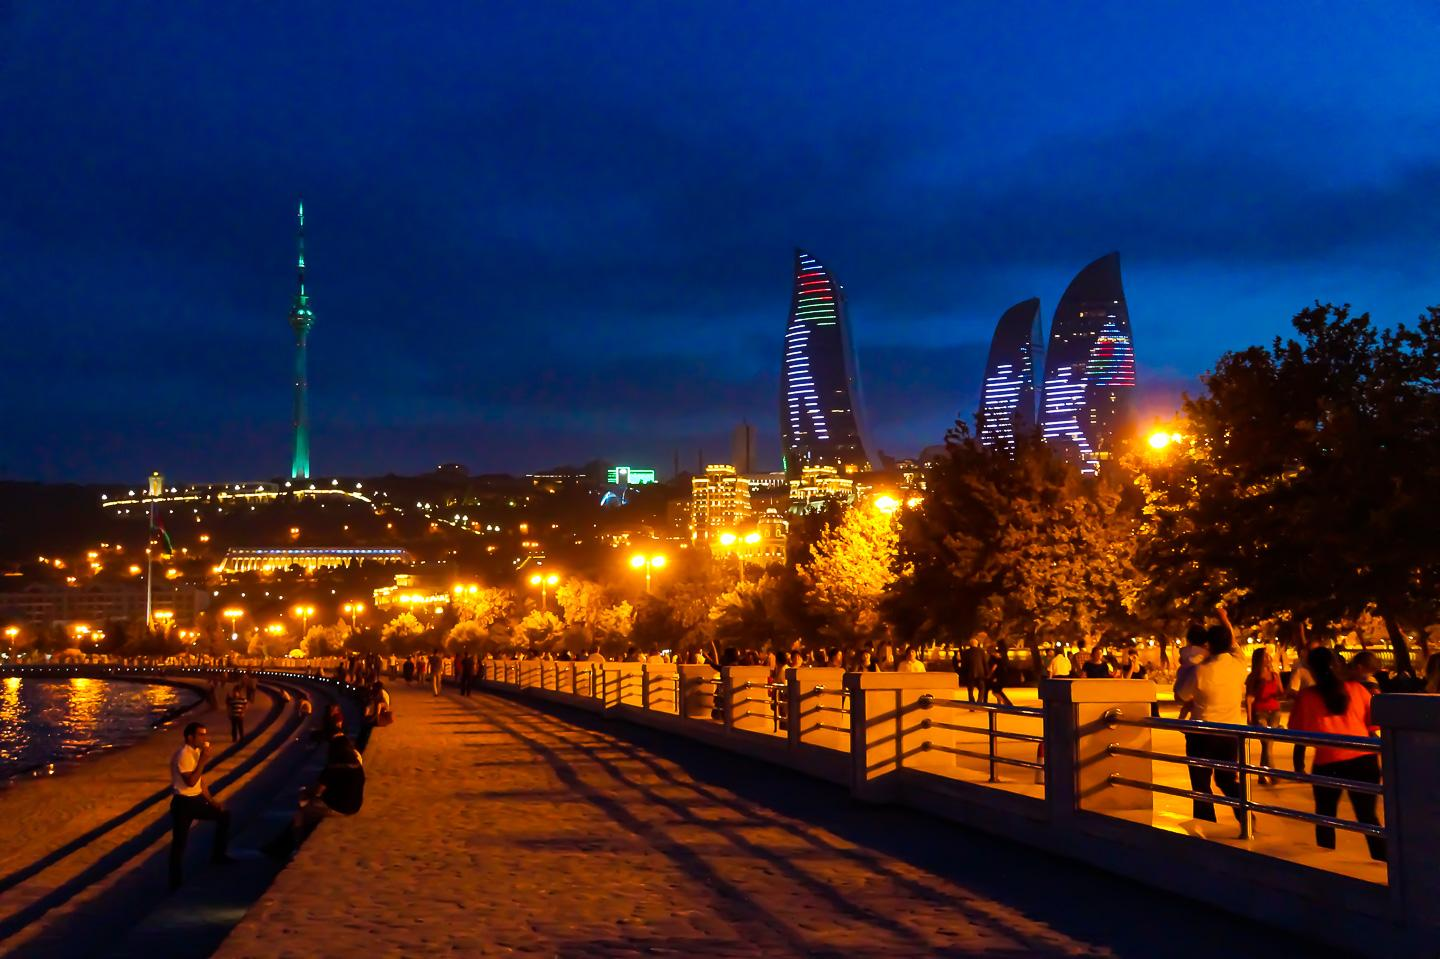 promenade in Baku by night with the Flame Towers